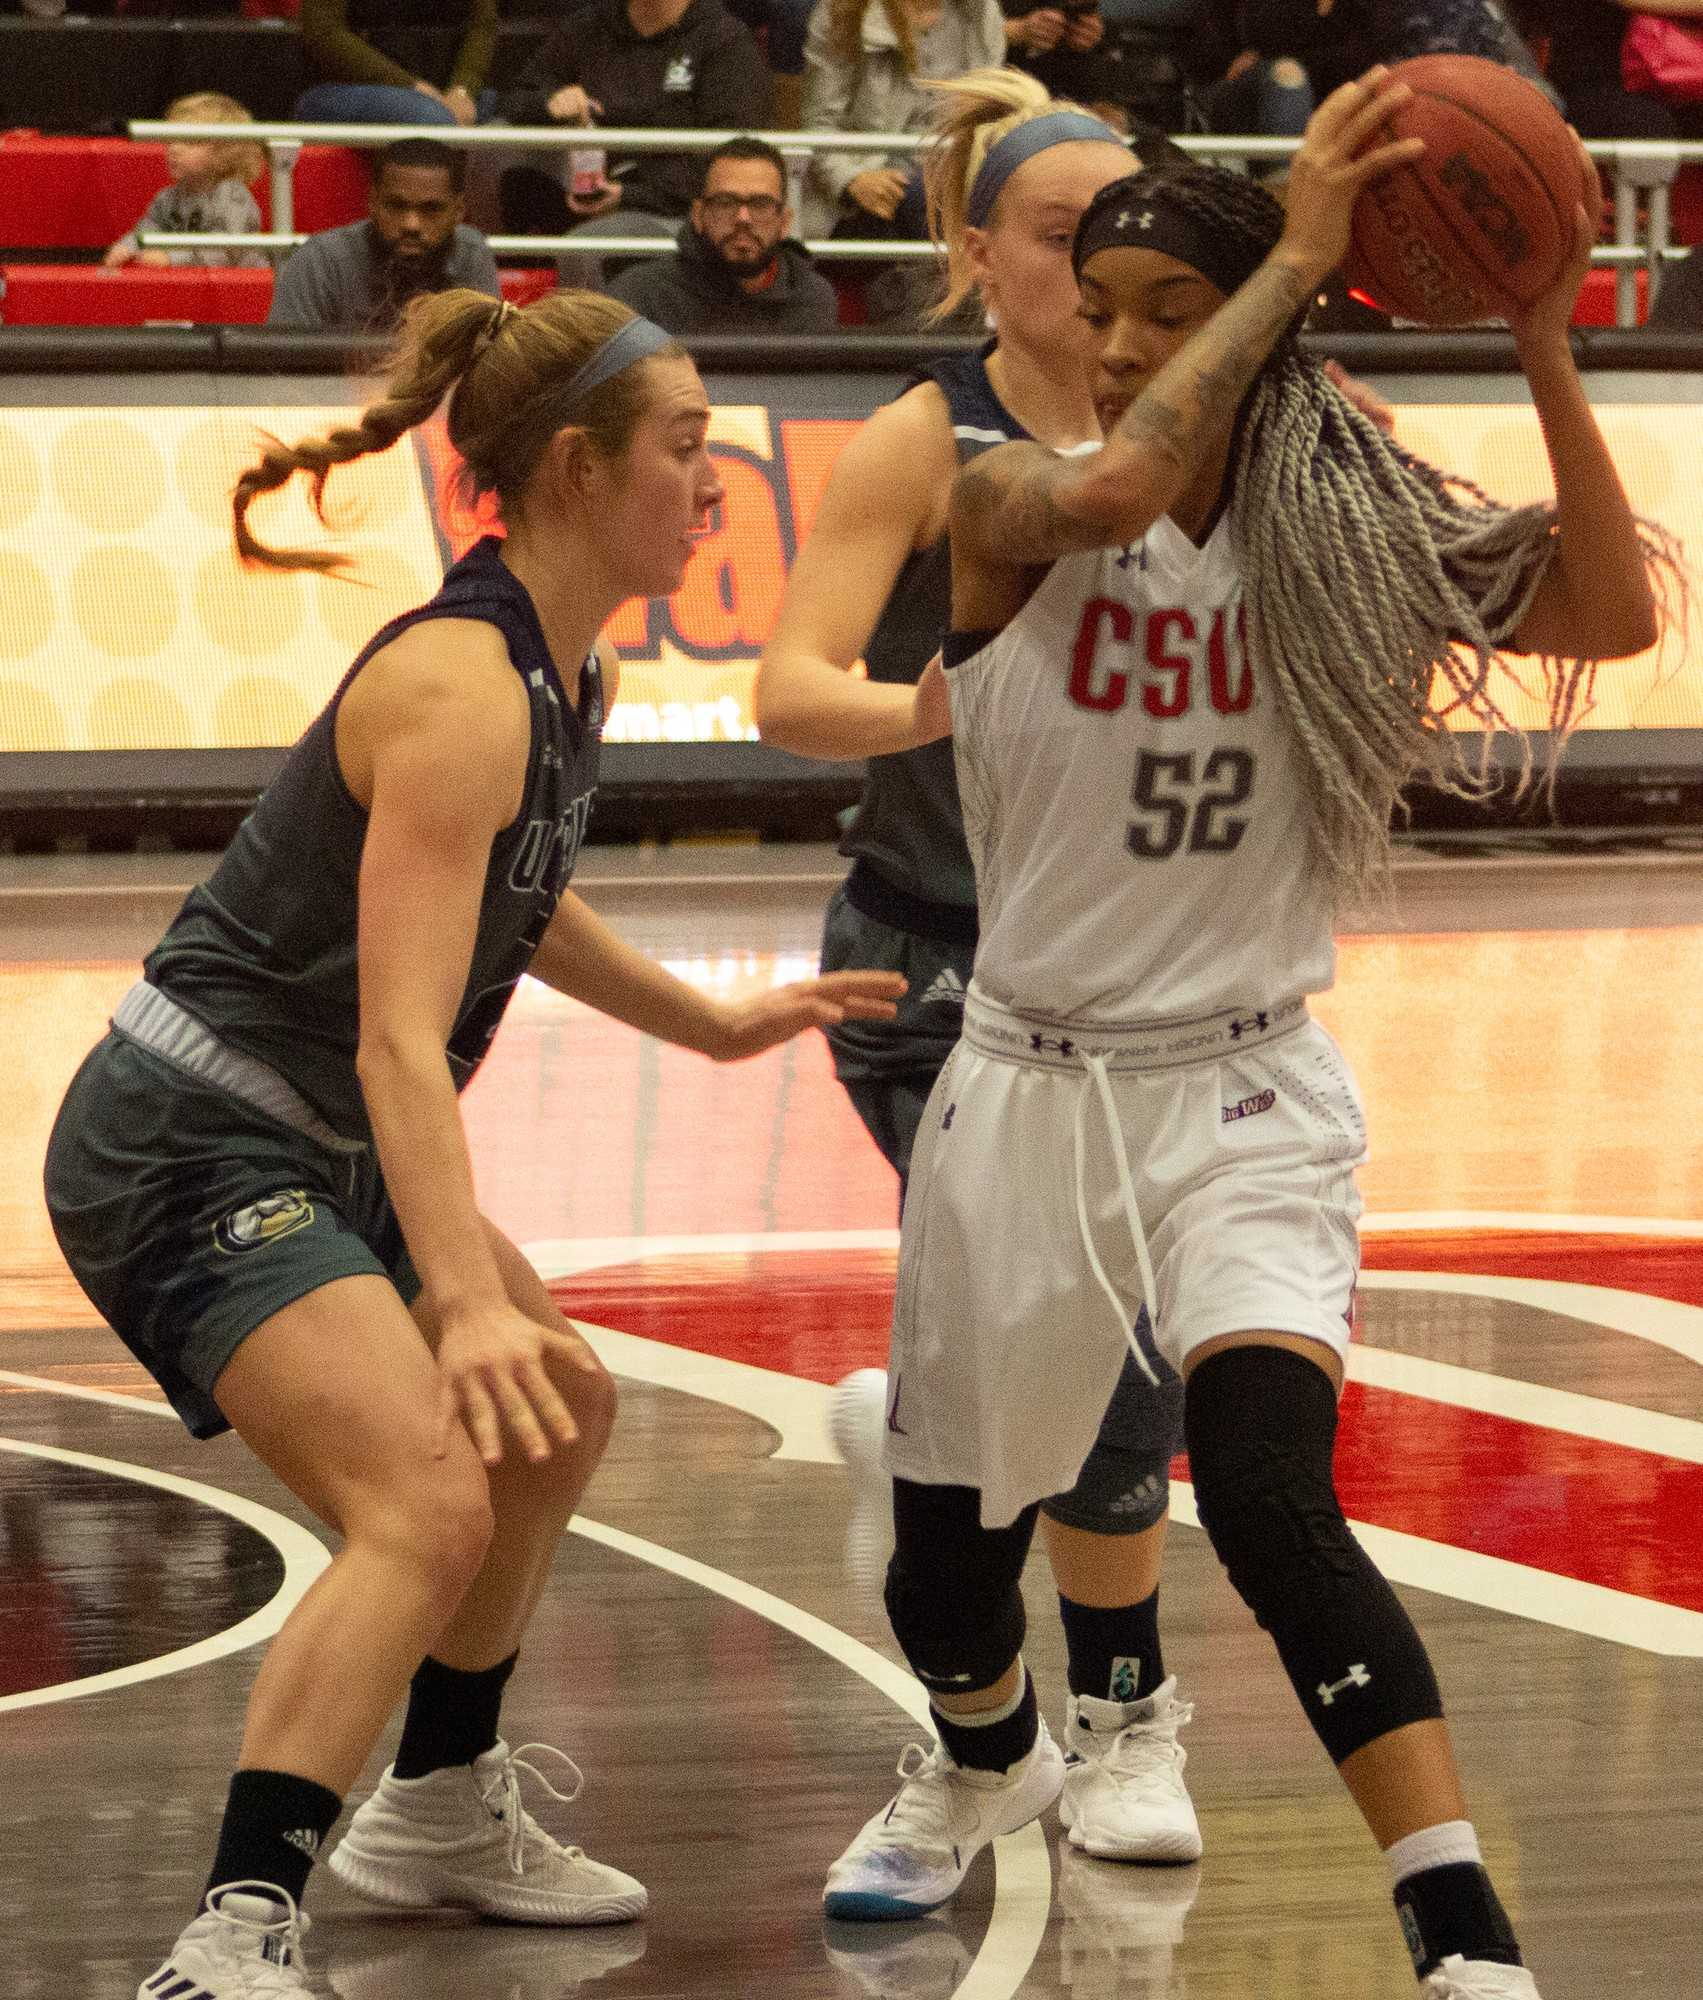 A CSUN Women's basketball player benig guarded by two players